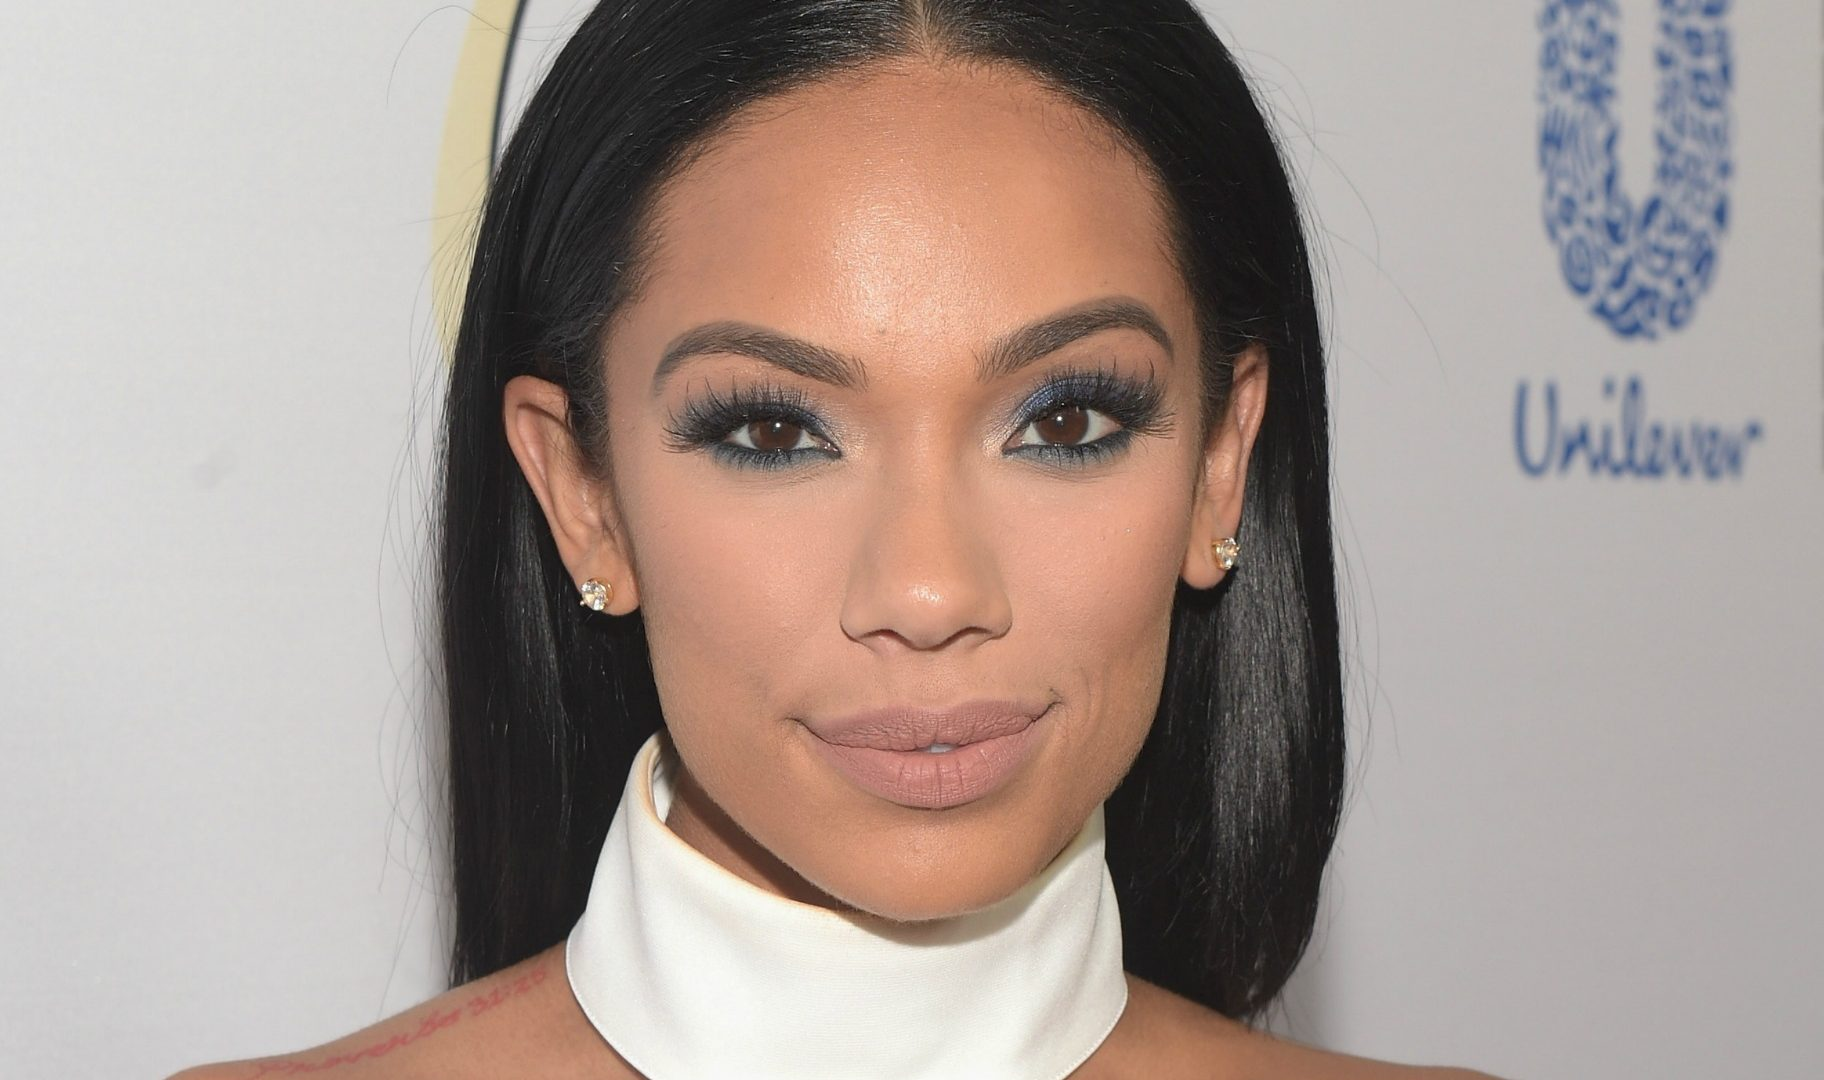 Erica Mena Looked Amazing For Halloween - See Her Outfit